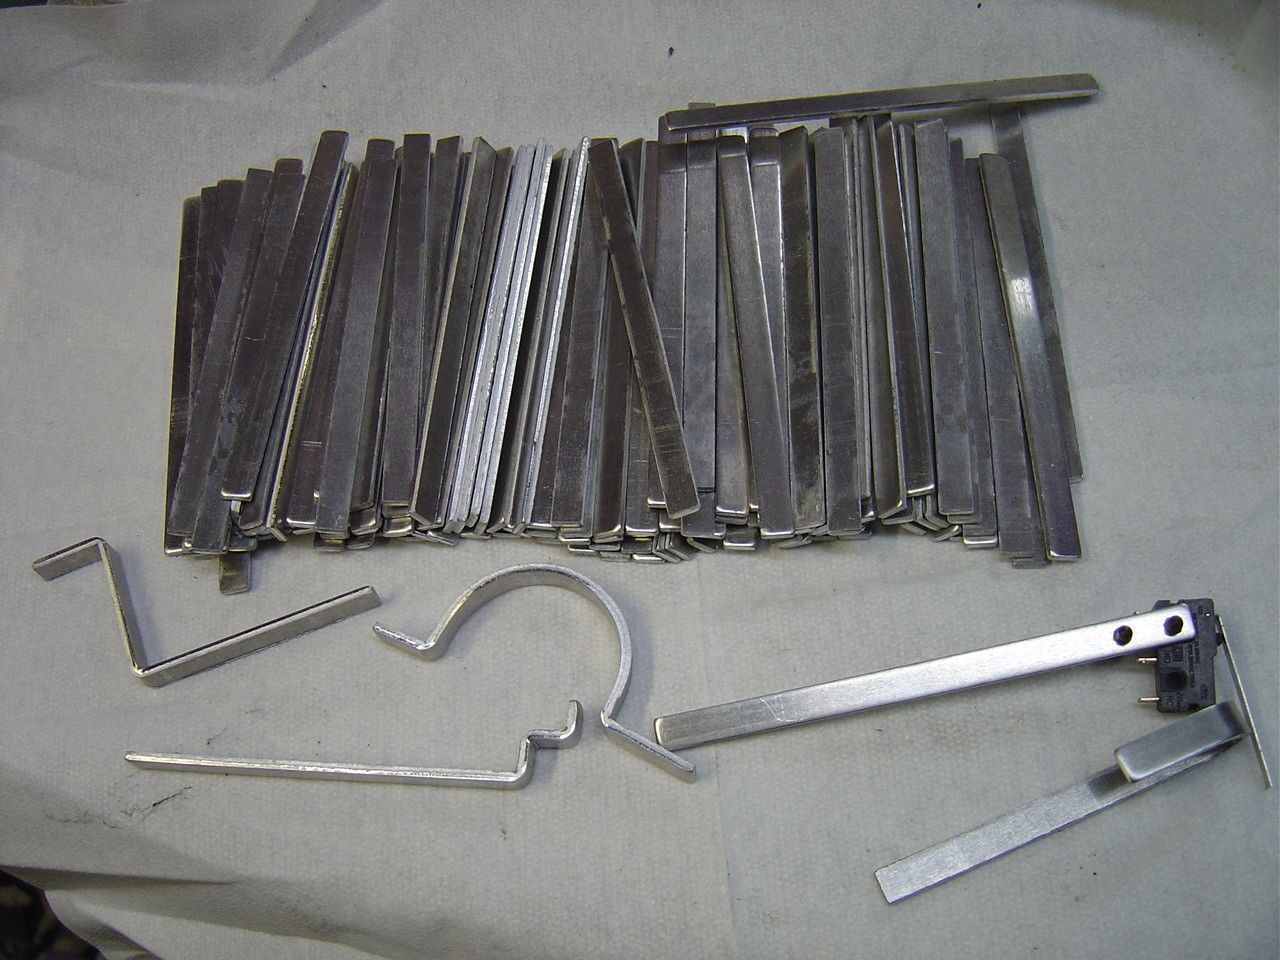 Metalworking 41369 Aluminum Strips 125 Thick X 1 4 Wide X 4 Long 100 Pcs Buy It Now Only 12 99 On Ebay Metalworking Alum Metal Working Aluminum Ebay